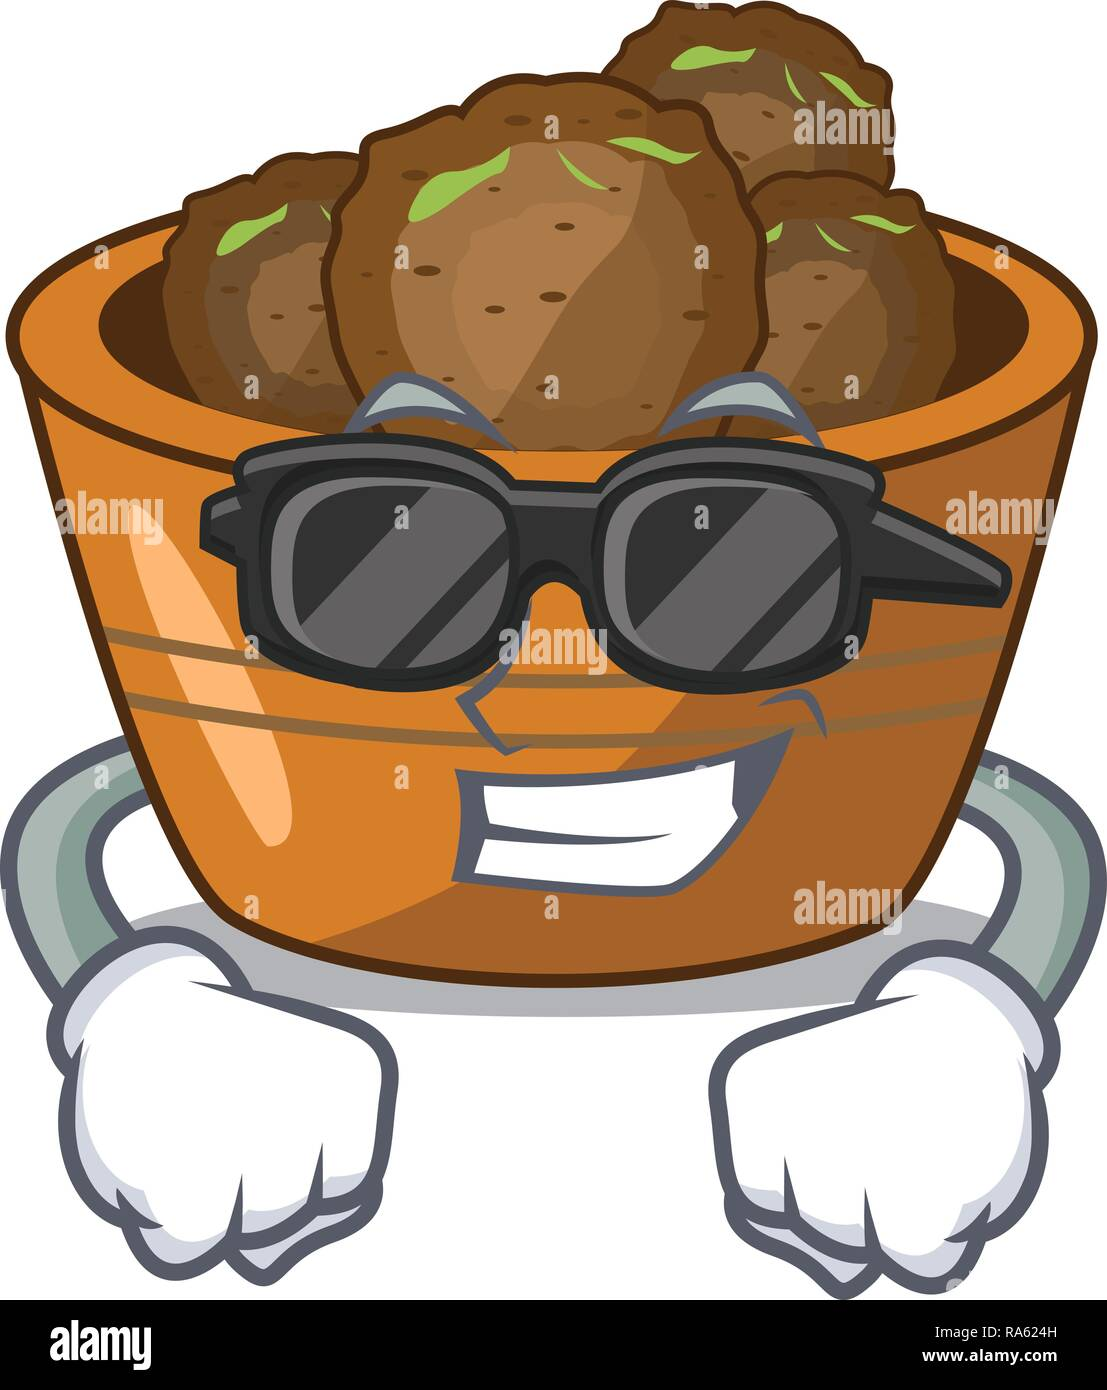 super coolgulab jamun on the character table - Stock Vector